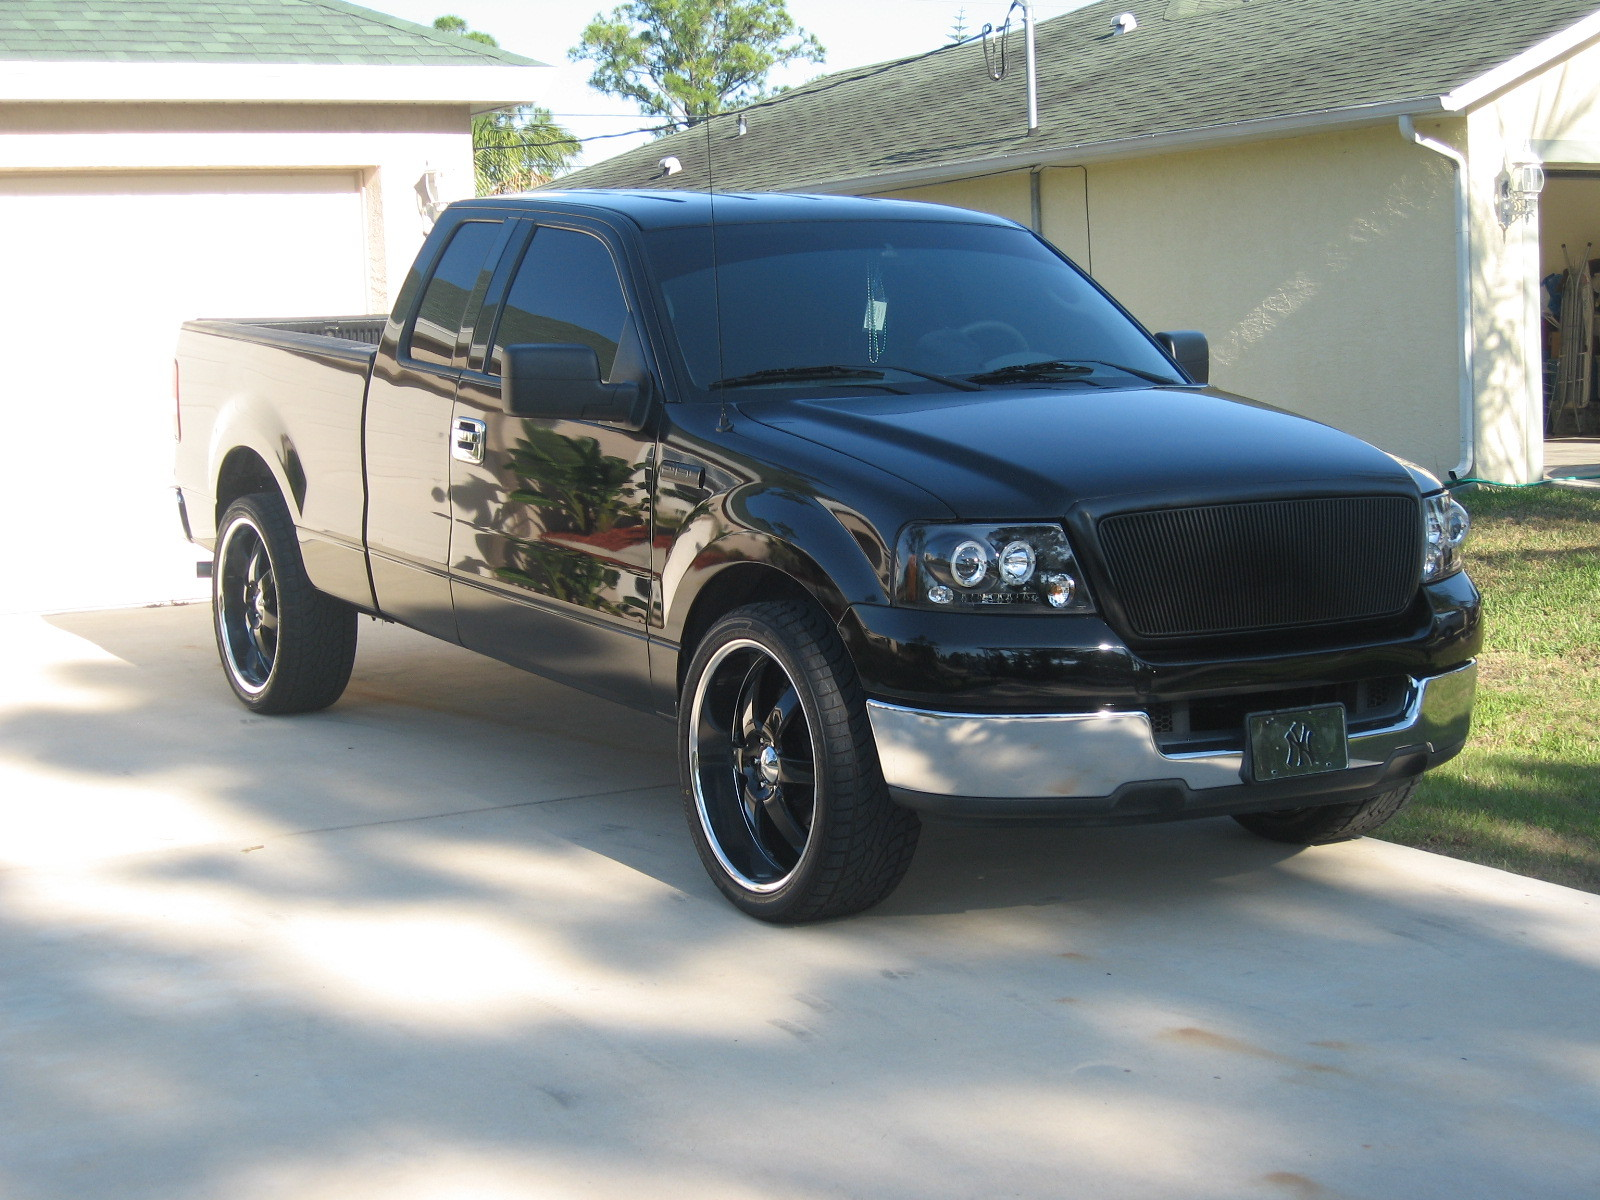 loubolz 2004 ford f150 regular cab specs photos modification info at cardomain. Black Bedroom Furniture Sets. Home Design Ideas